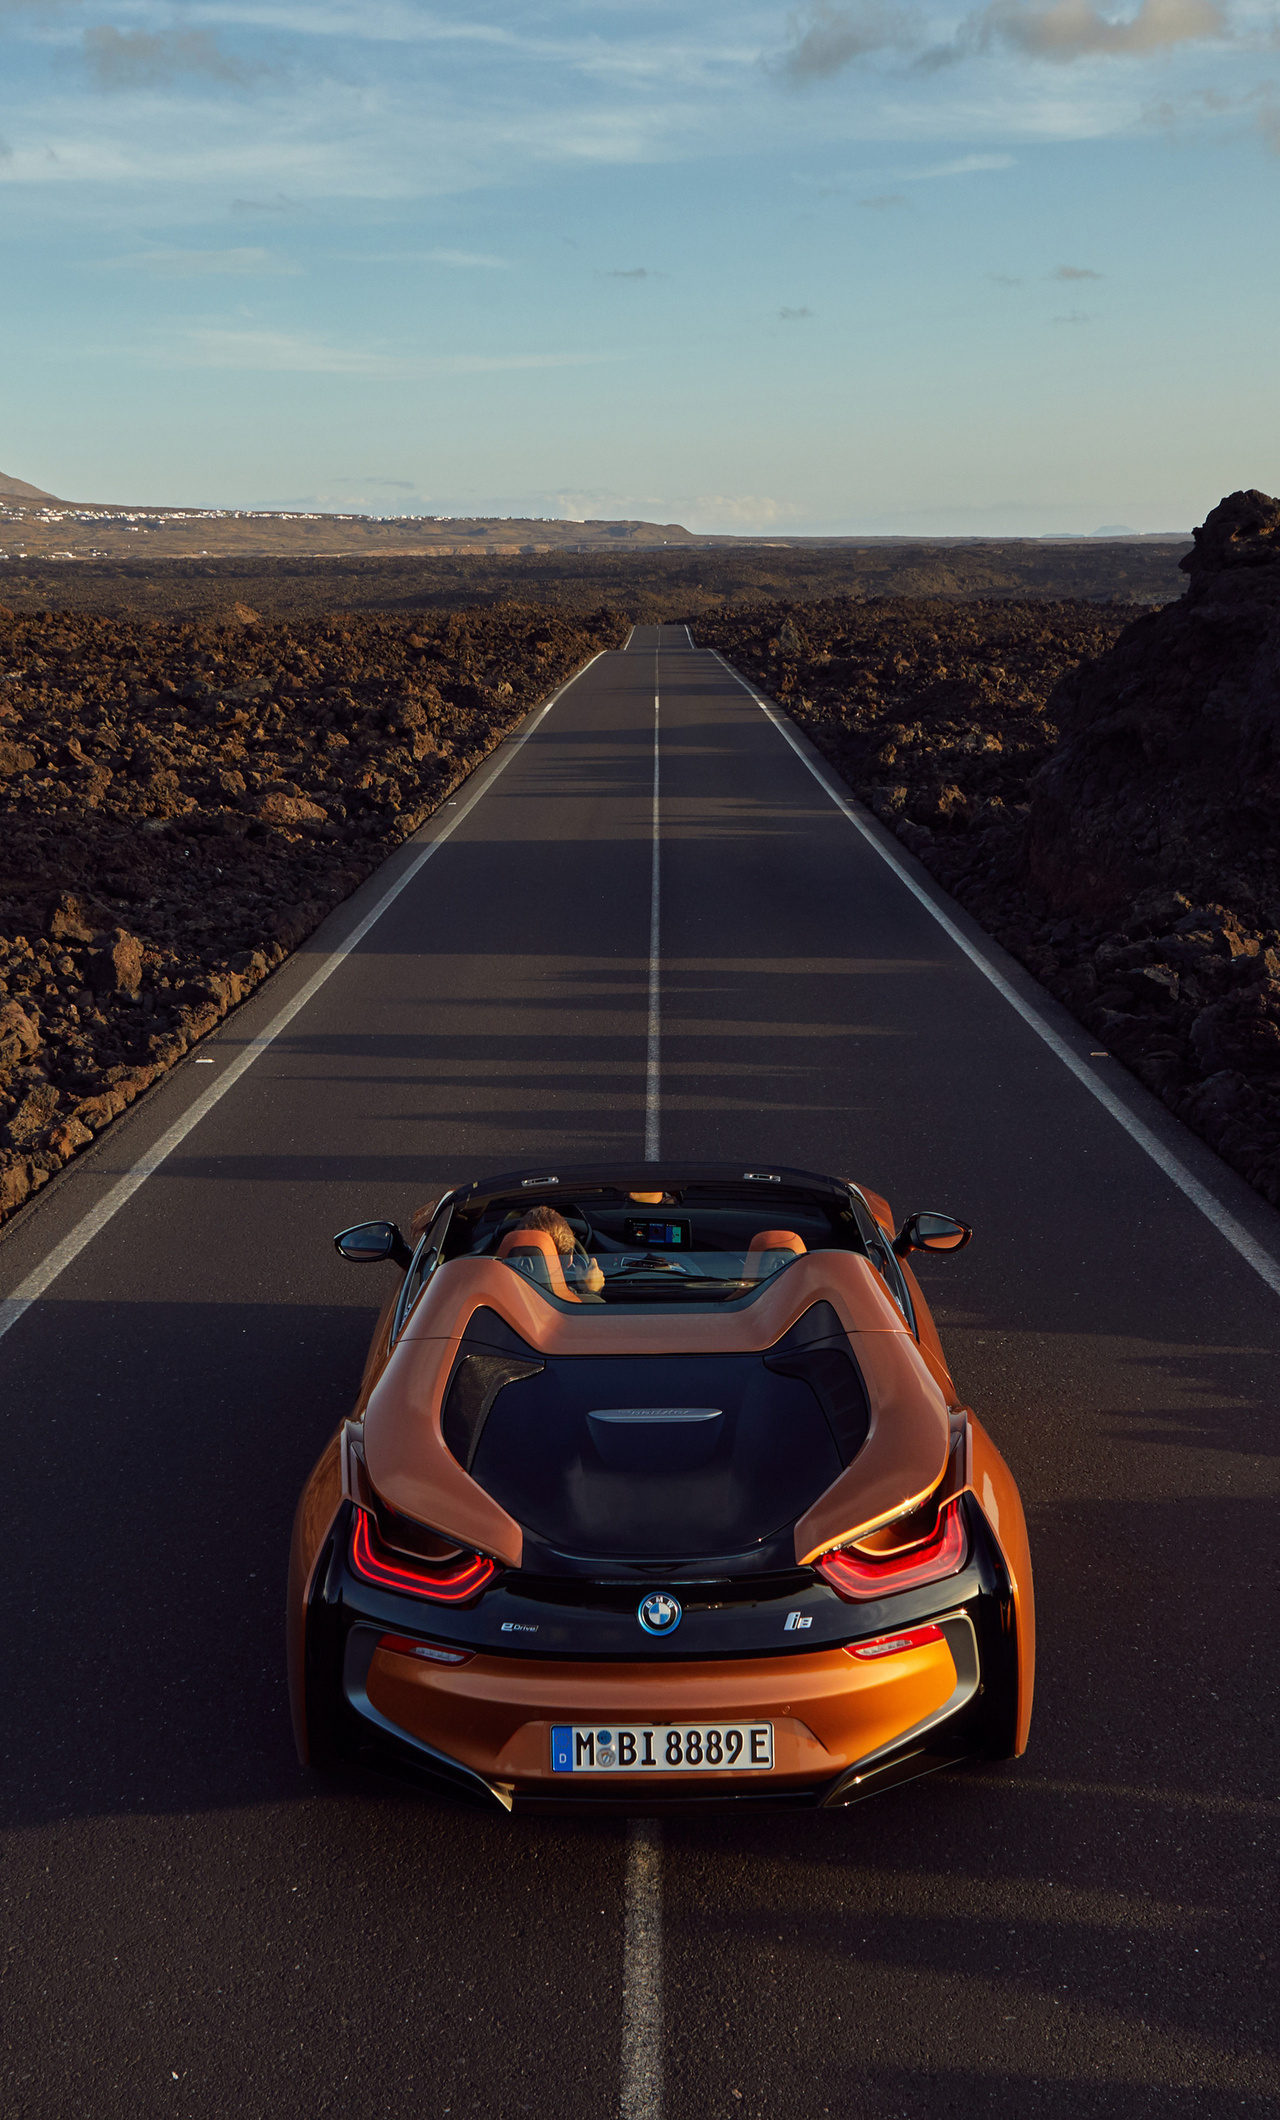 1280x2120 Bmw I8 Roadster 2018 Iphone 6 Hd 4k Wallpapers Images